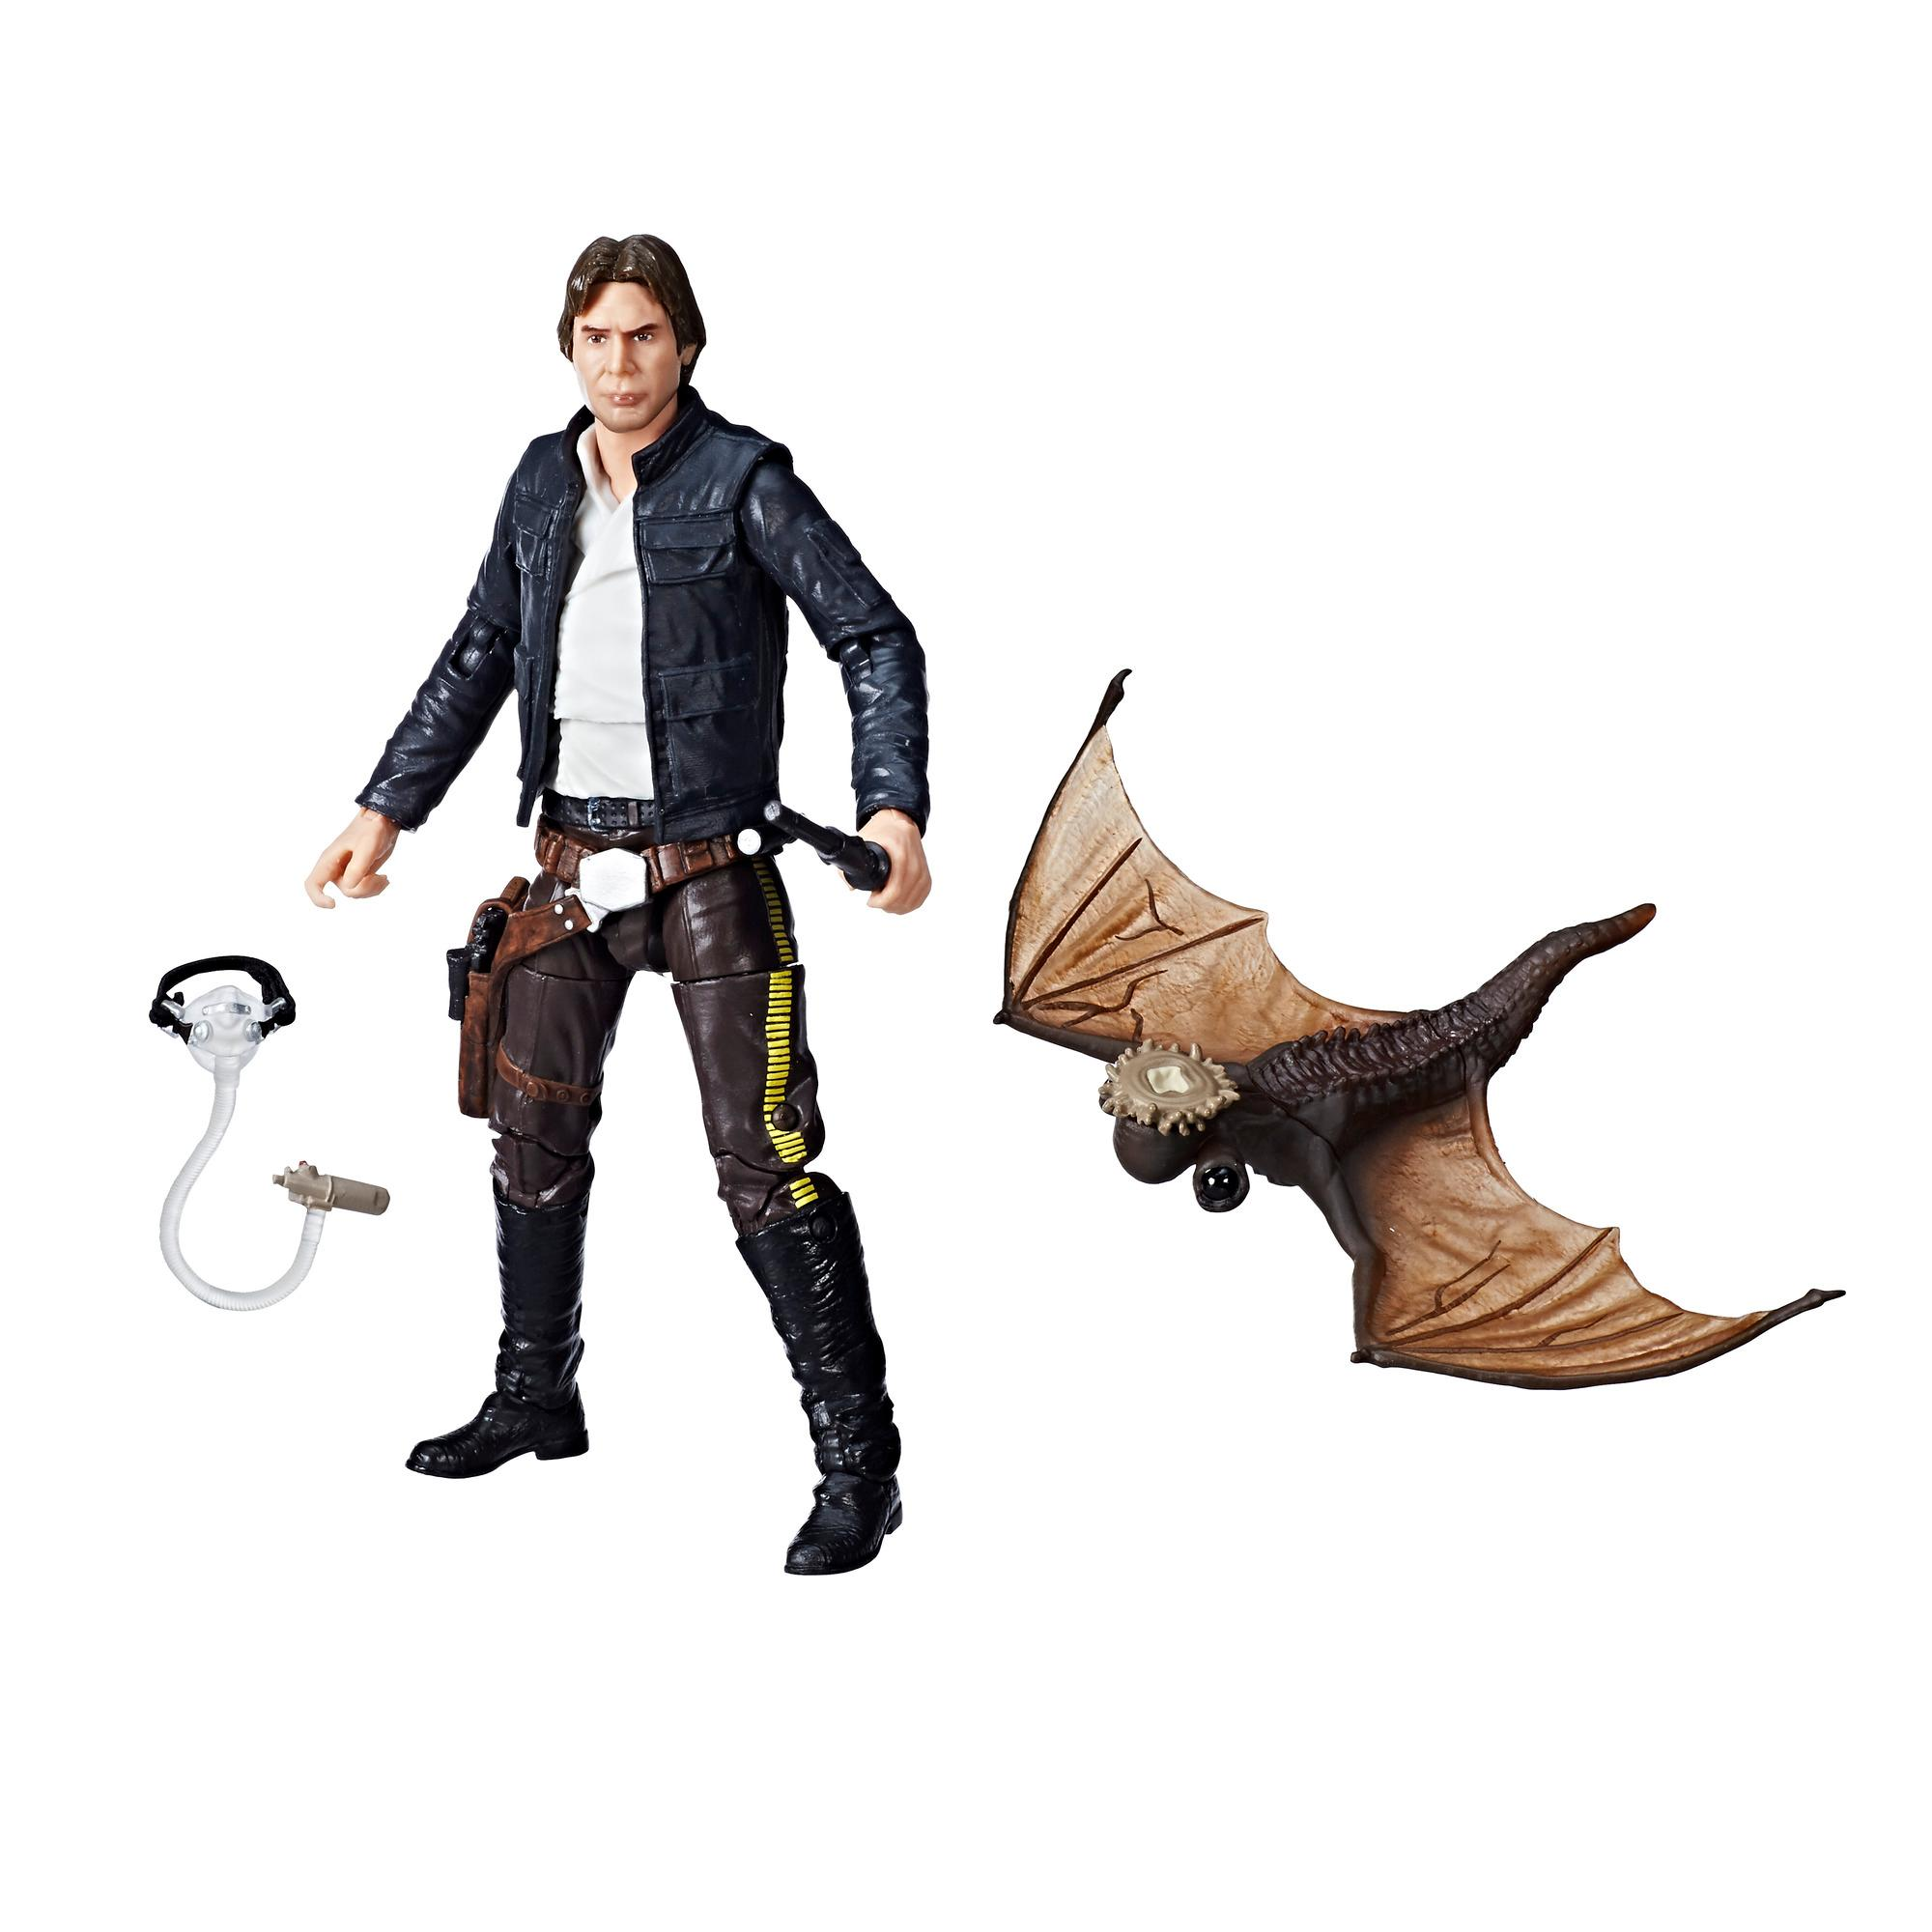 Star Wars The Black Series Han Solo with Mynock Star Wars Celebration Exclusive